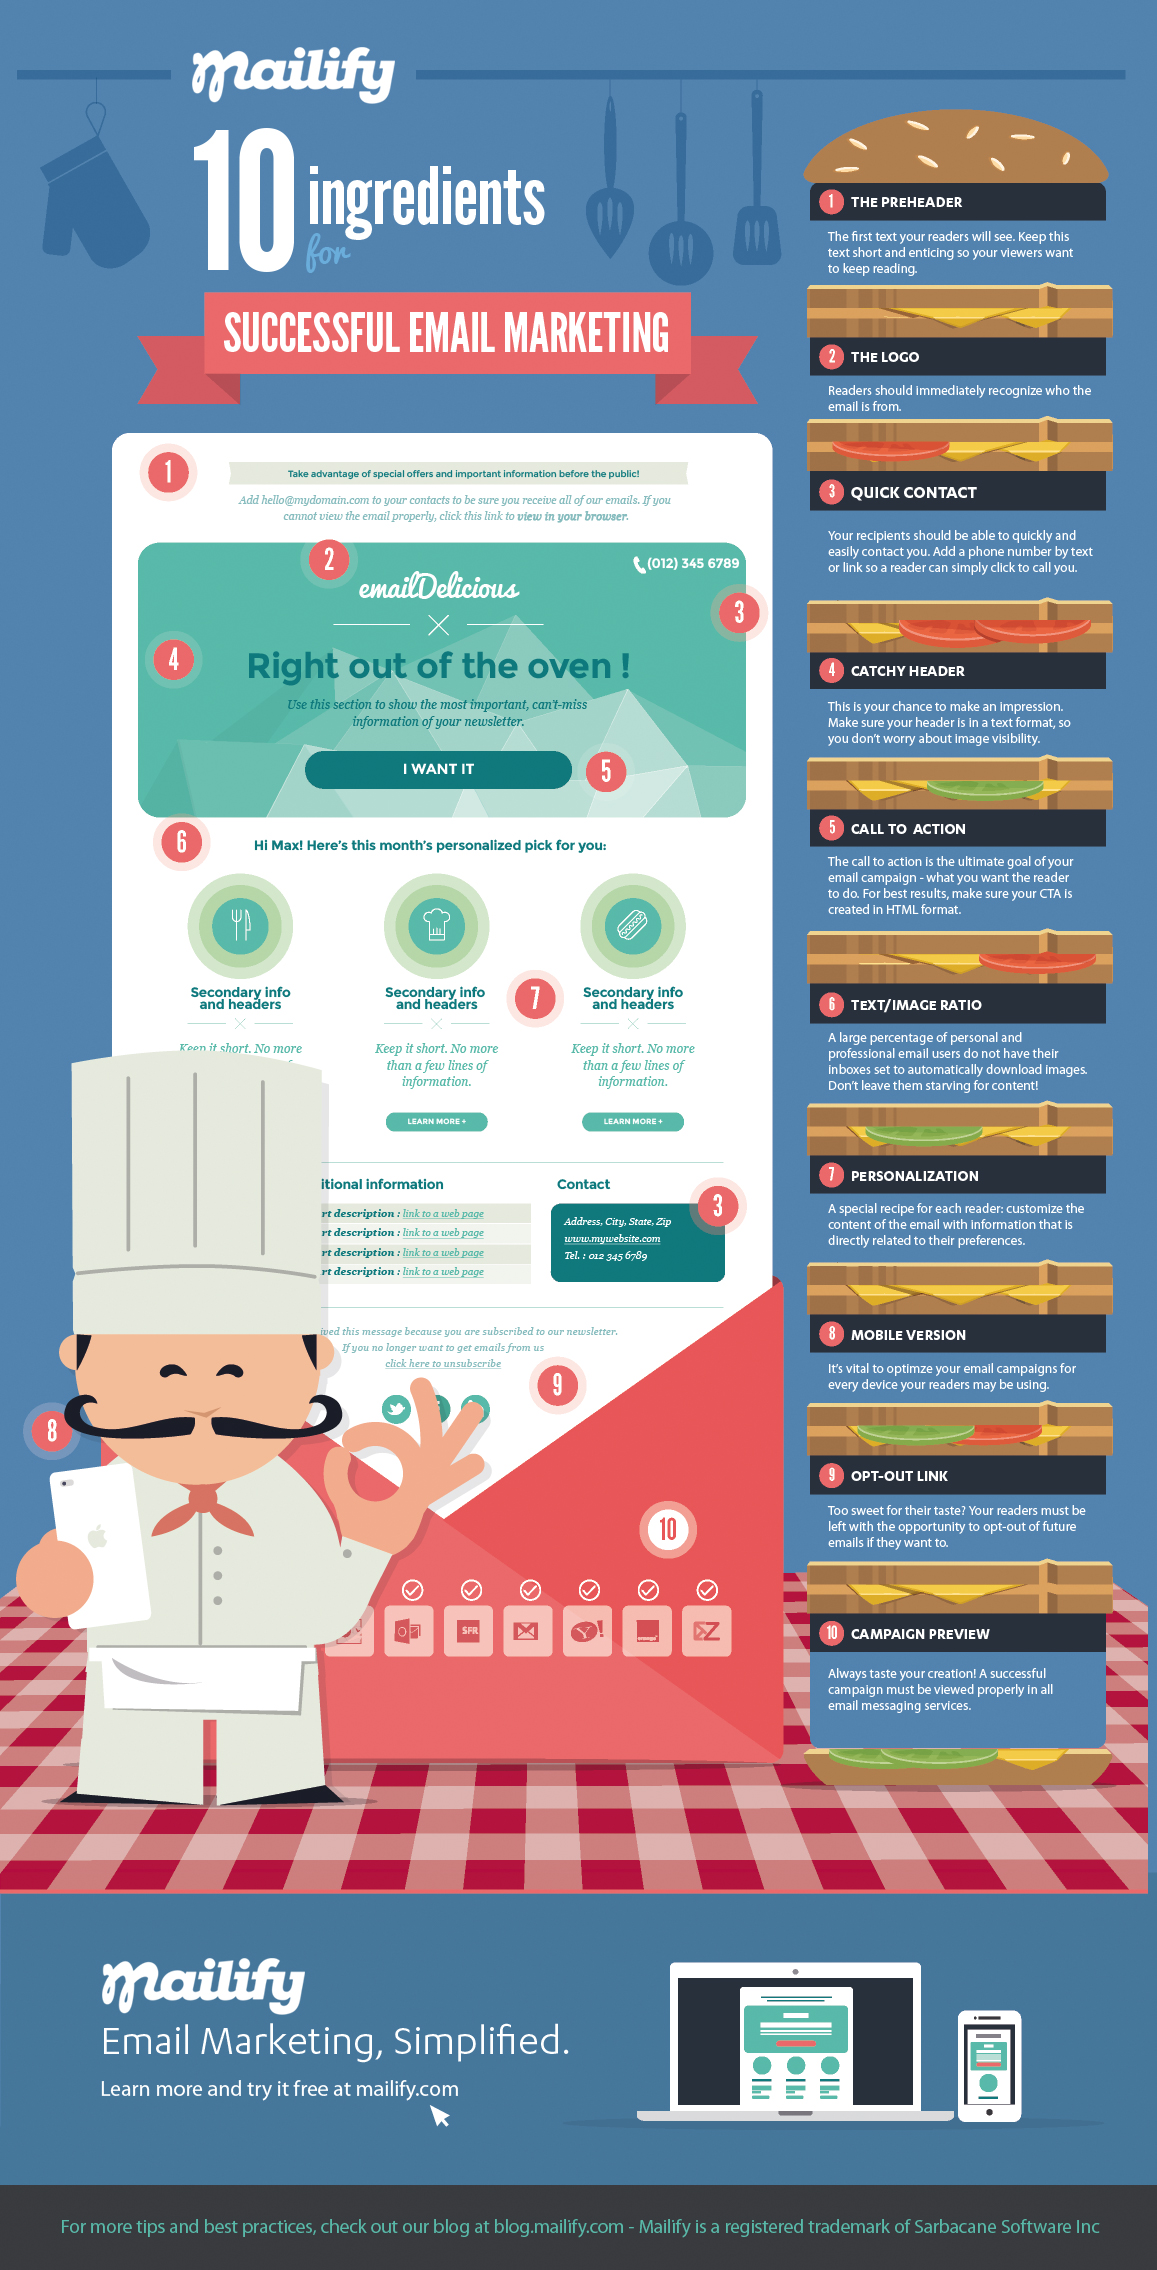 infographic-10-ingredients-for-successful-email-marketing-by-mailify